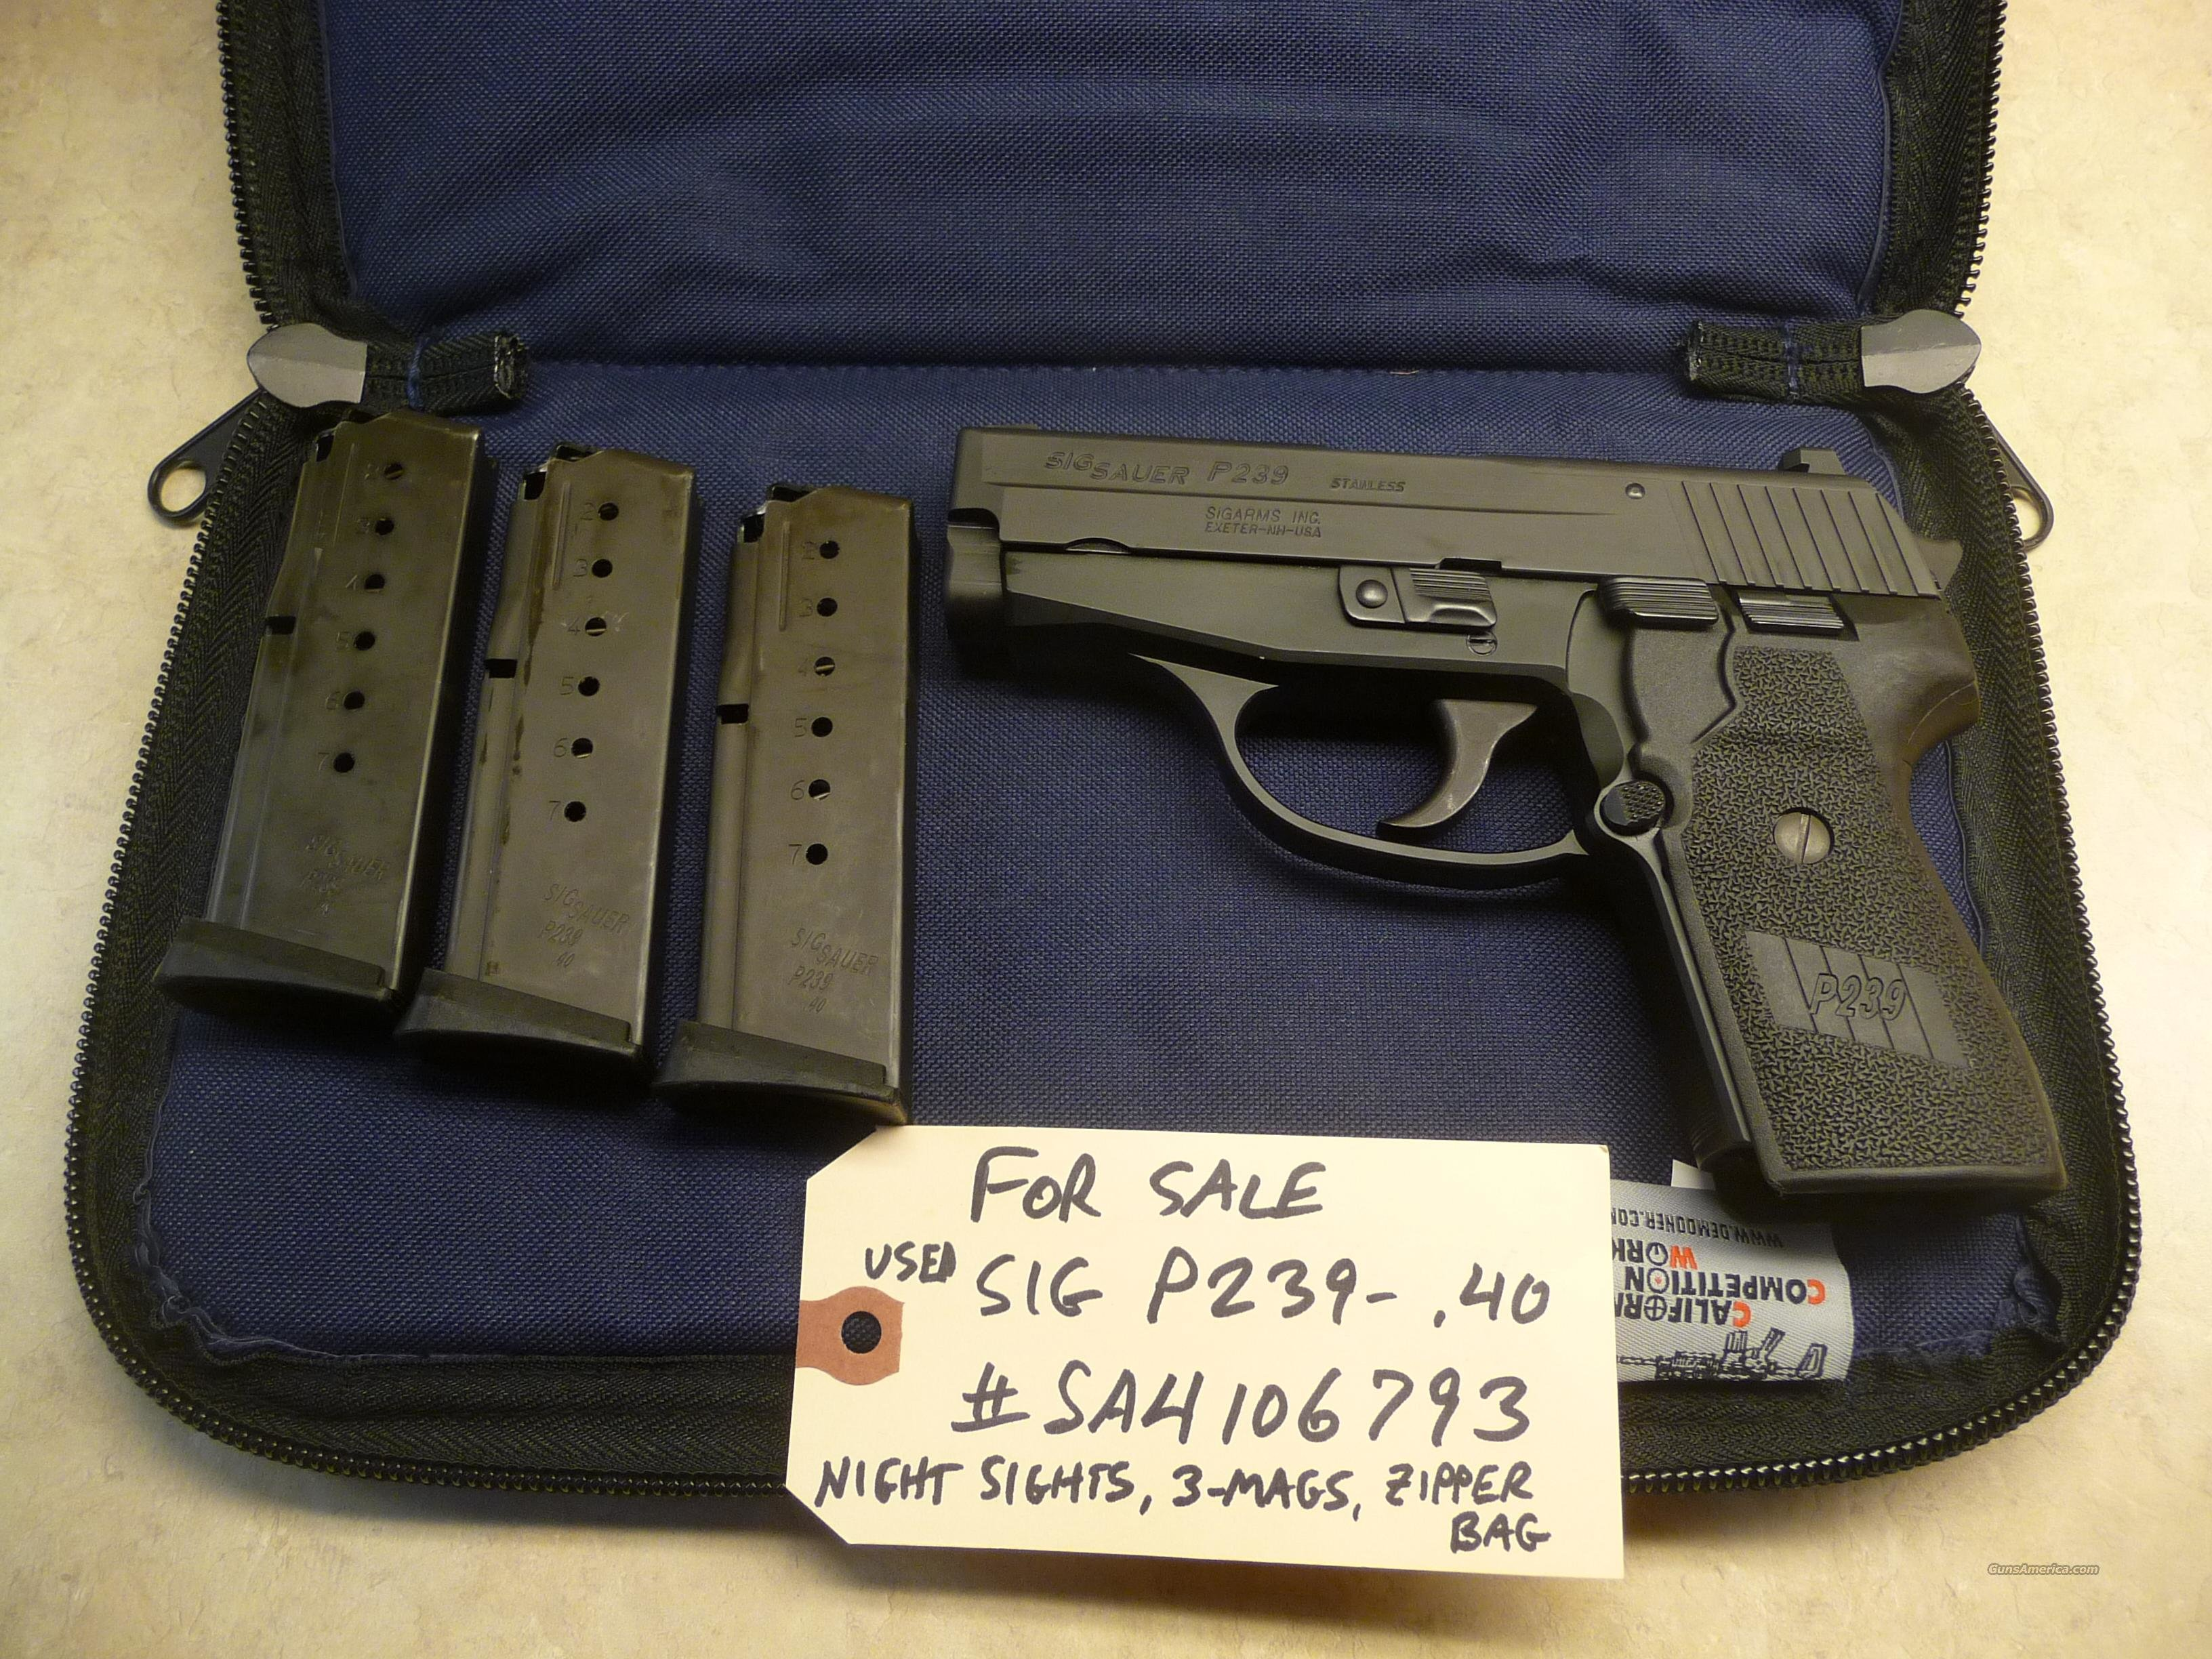 Used Sig P239 .40 Caliber Pistol, 3 California Legal Mags, Night Sights, Police Trade In  Guns > Pistols > Sig - Sauer/Sigarms Pistols > P239